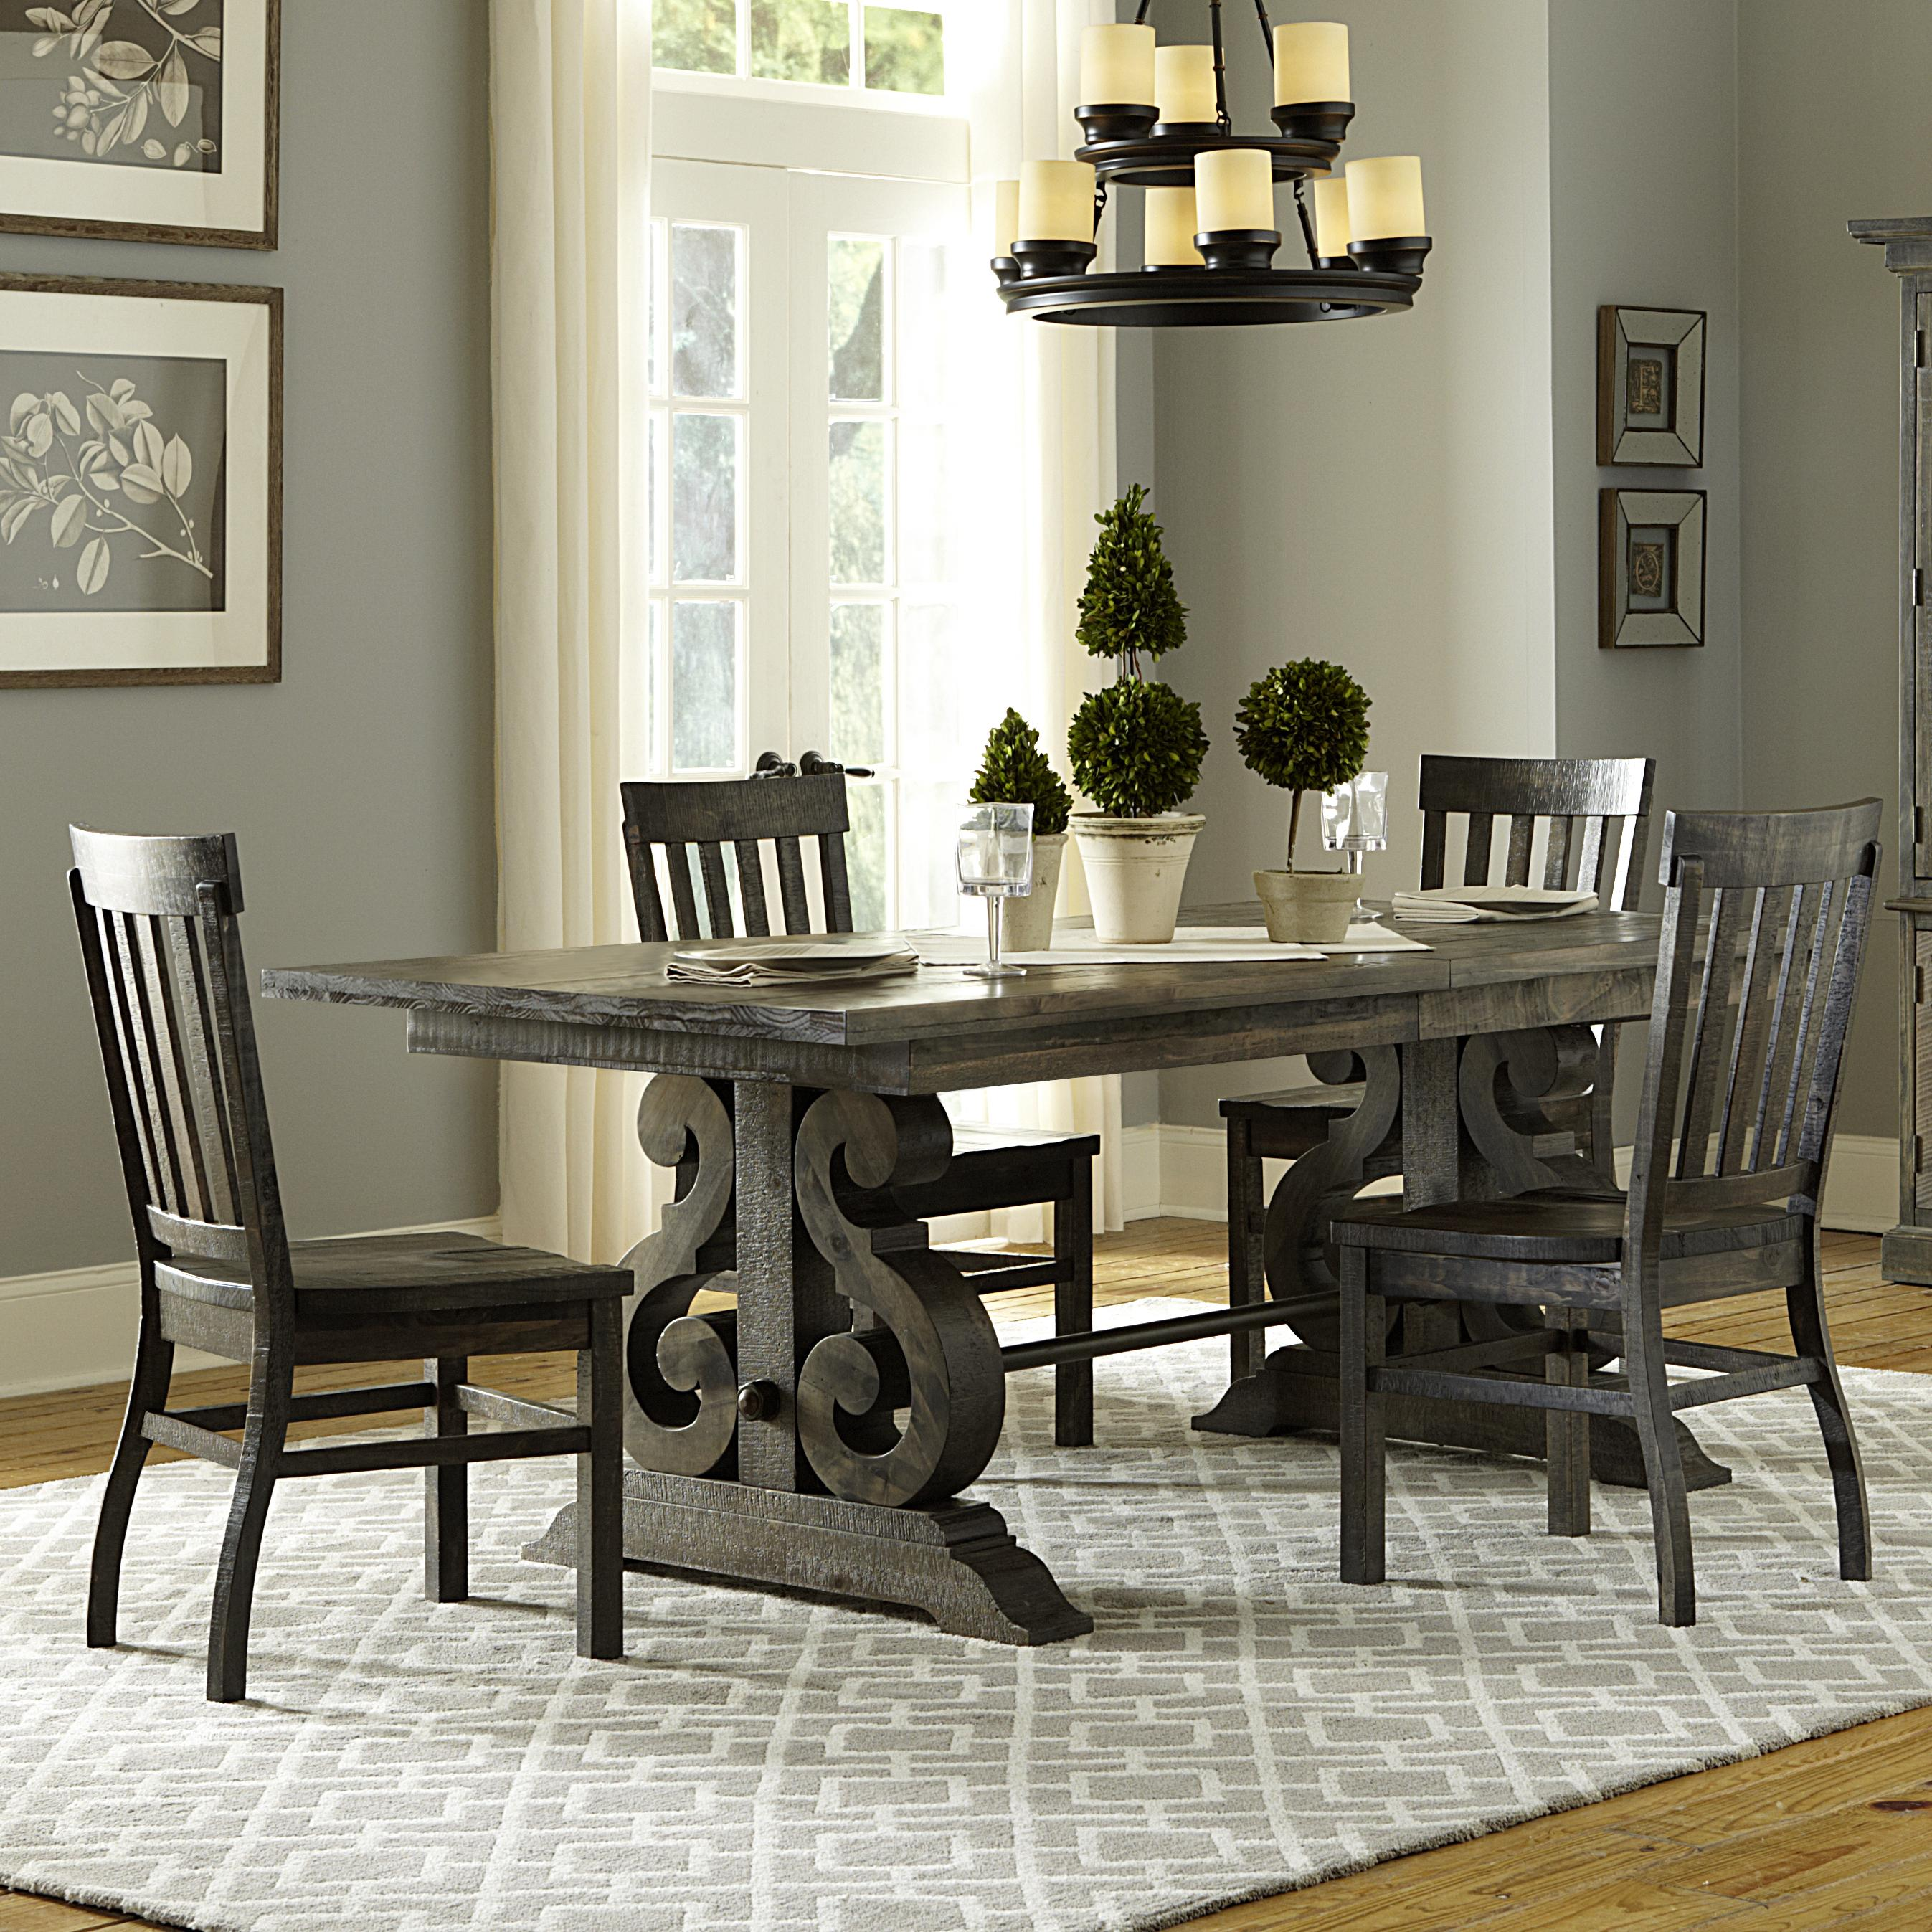 Bellamy 5 Pc Formal Dining Set by Magnussen Home at Johnny Janosik